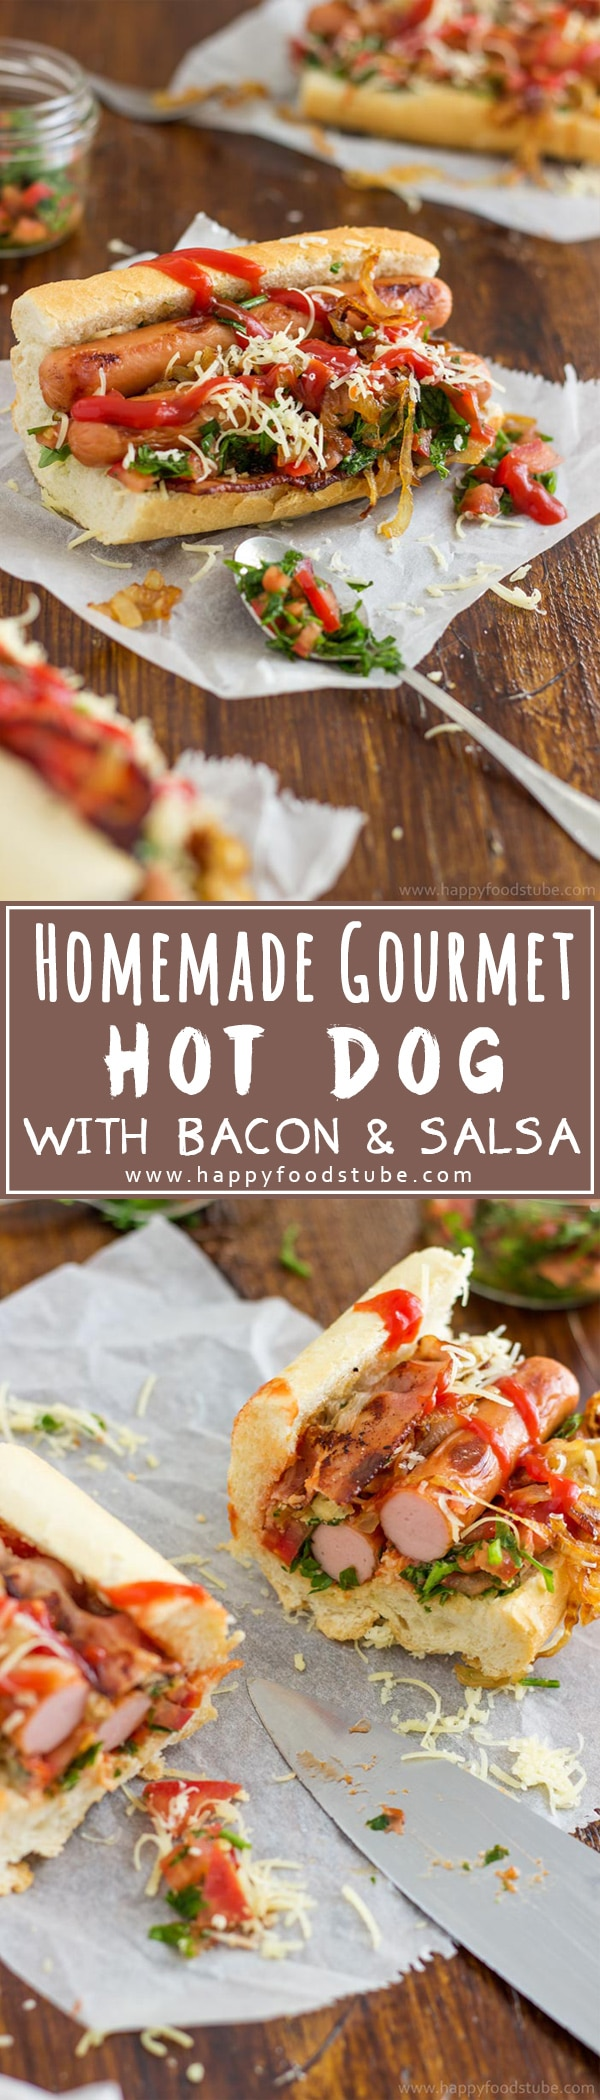 Homemade gourmet Hot Dog with bacon and salsa, topped with caramelized onions & cheese is a dream come true for your taste buds! | happyfoodstube.com